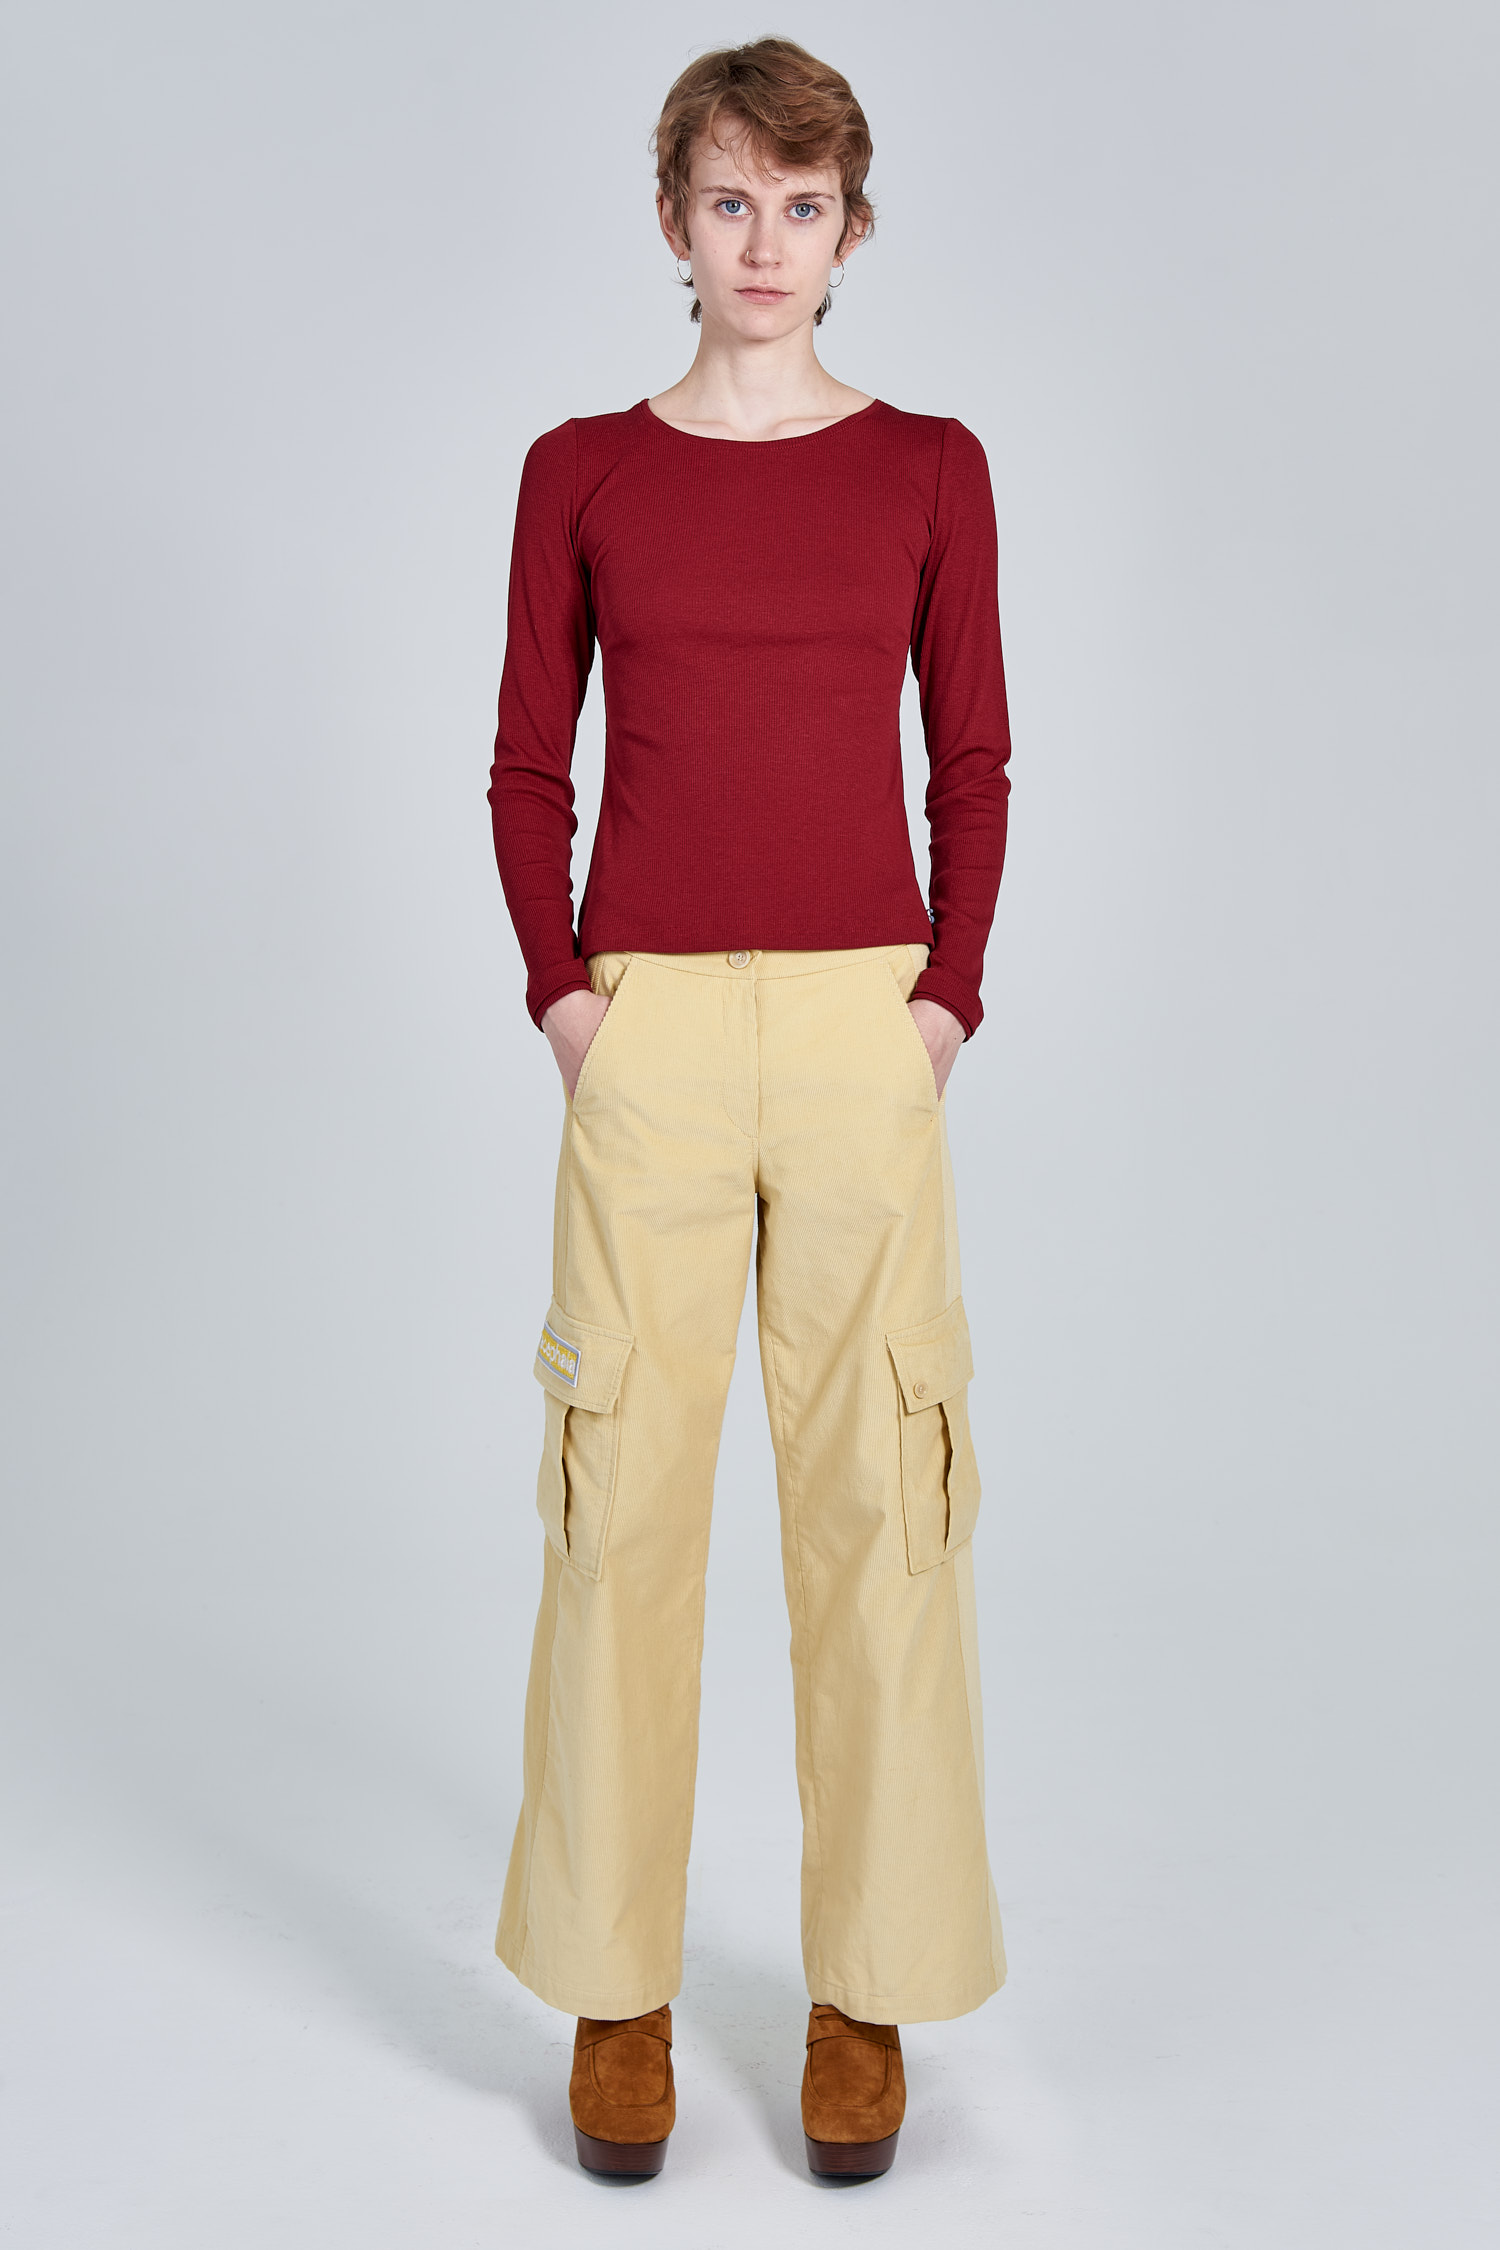 Acephala Fw 2020 21 Red Longsleeve Yellow Corduroy Trousers